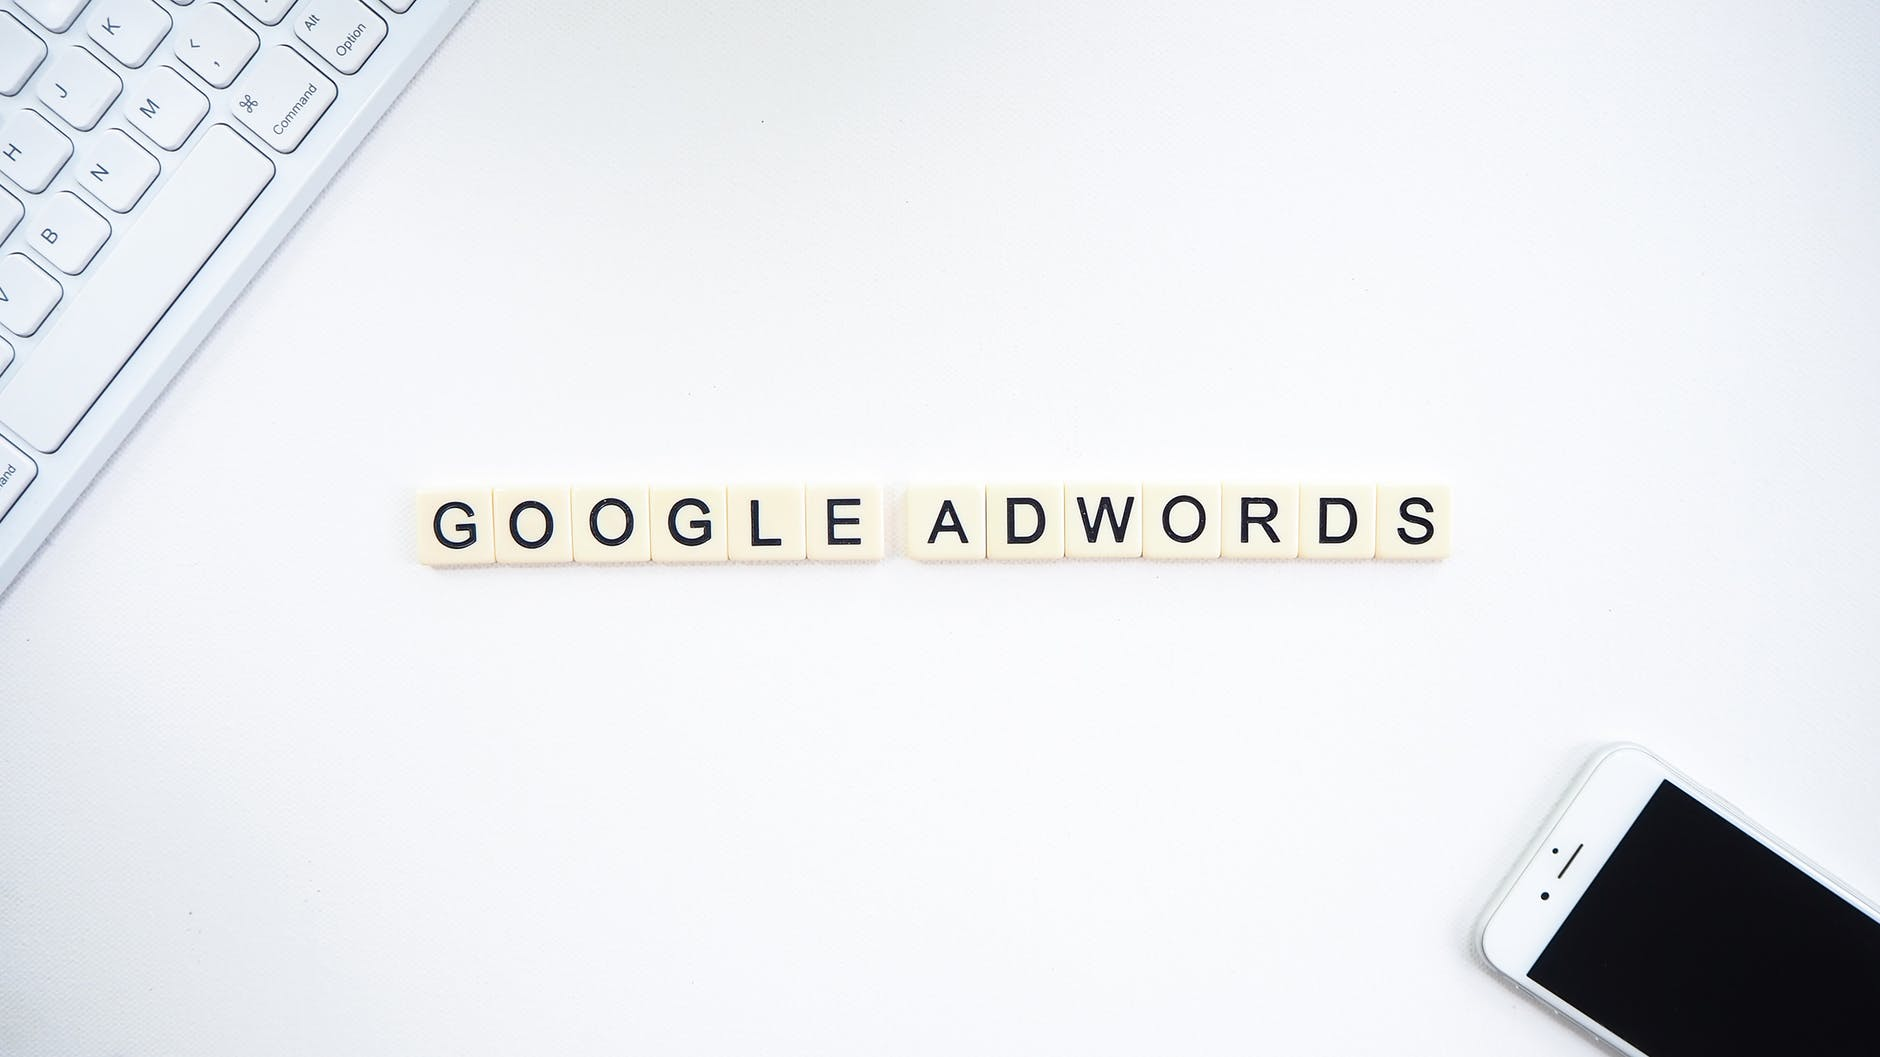 google adwords copywriting services